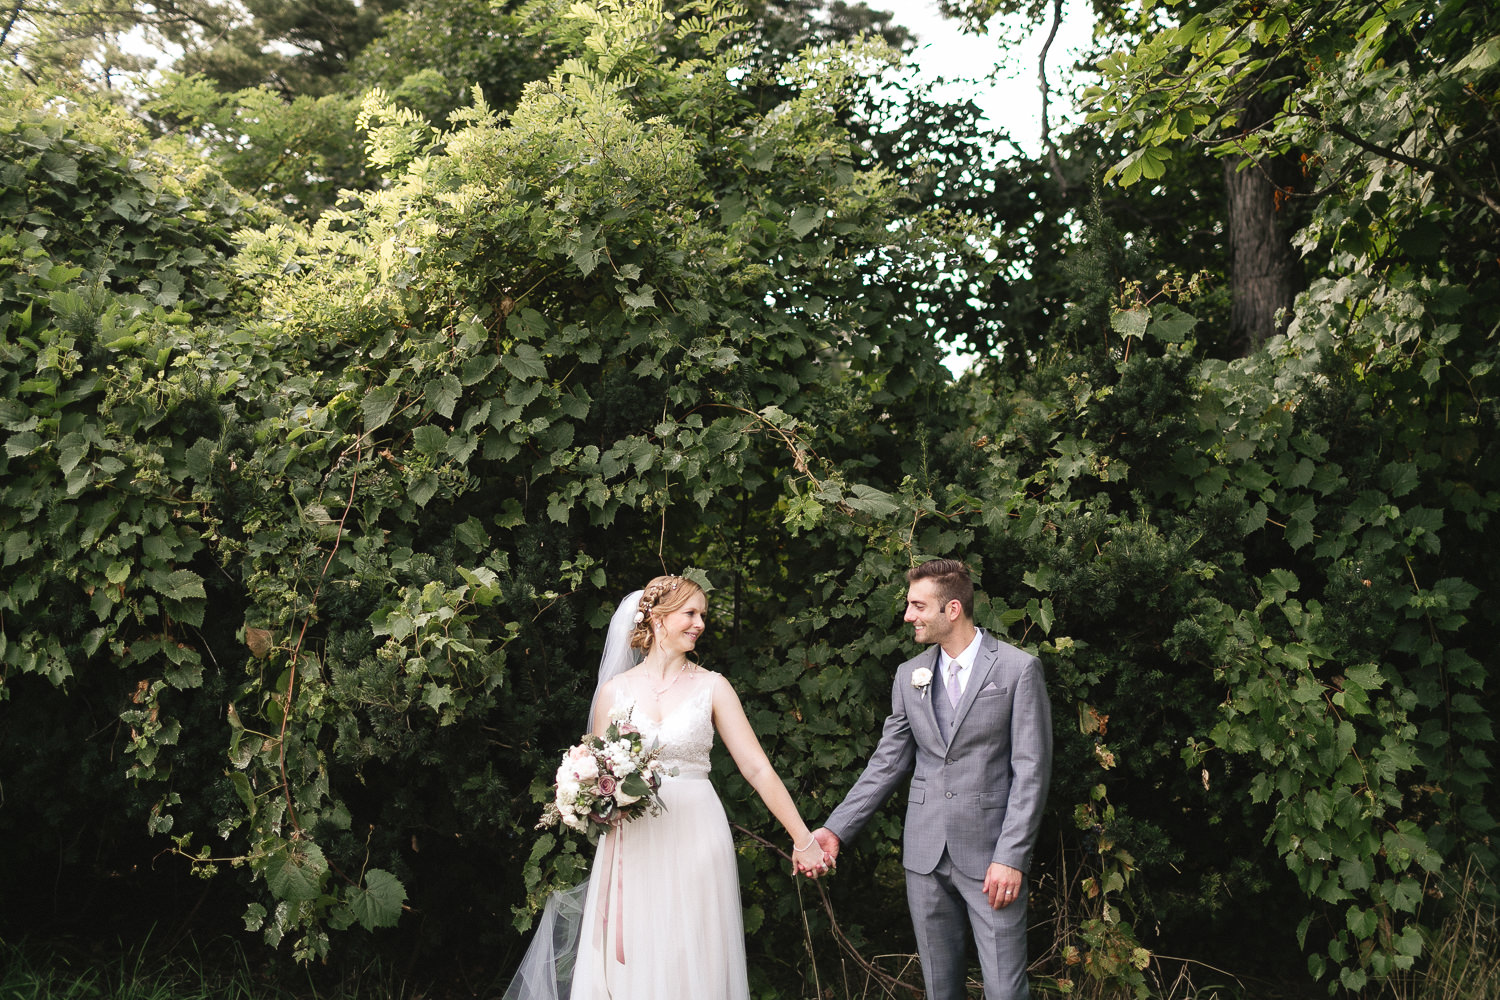 Gracewood estates, Kurtz Orchard Wedding Photographer